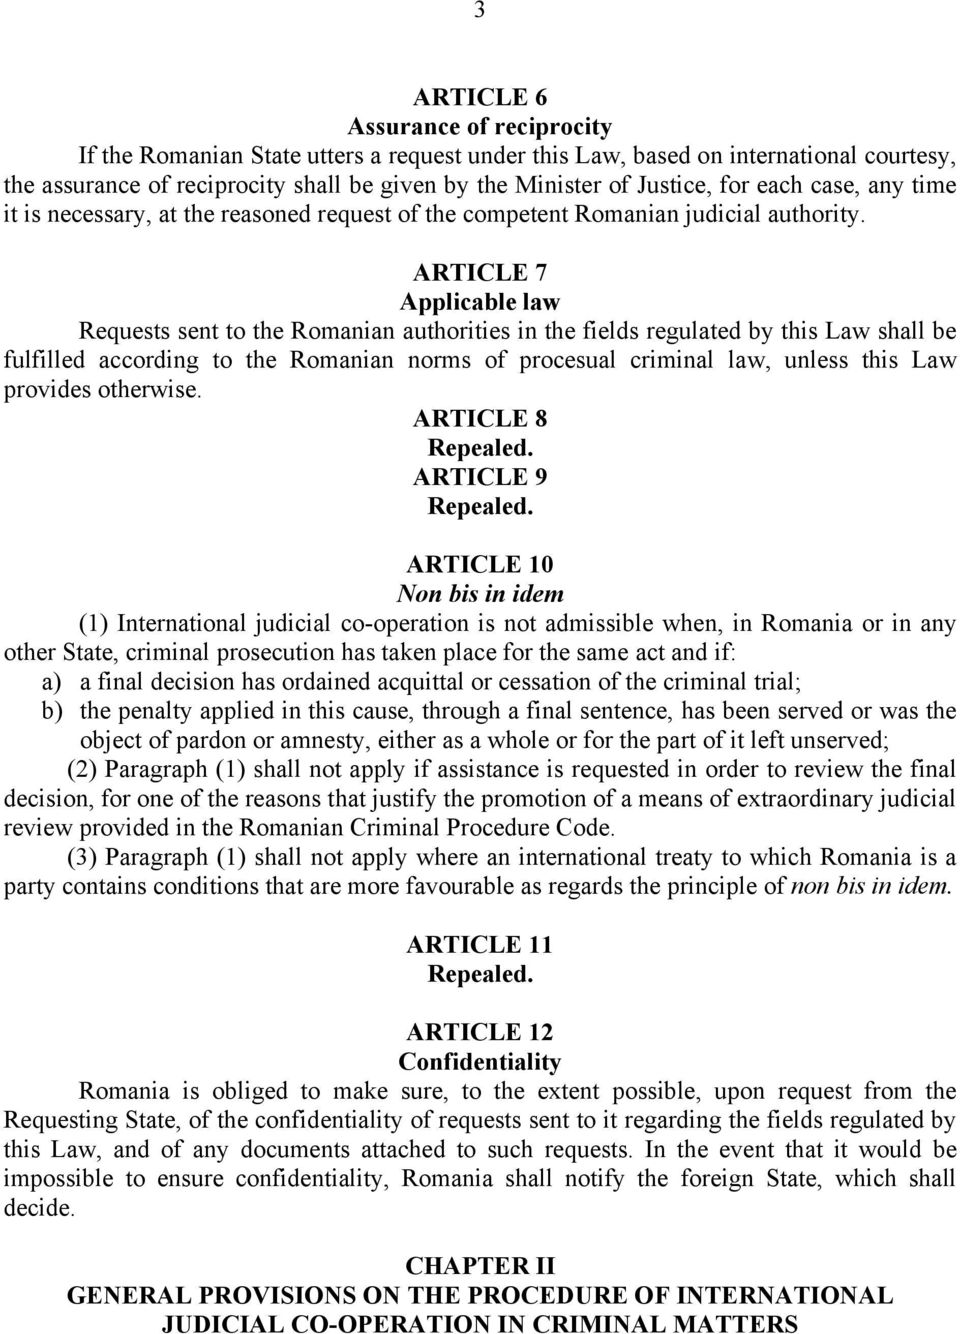 ARTICLE 7 Applicable law Requests sent to the Romanian authorities in the fields regulated by this Law shall be fulfilled according to the Romanian norms of procesual criminal law, unless this Law